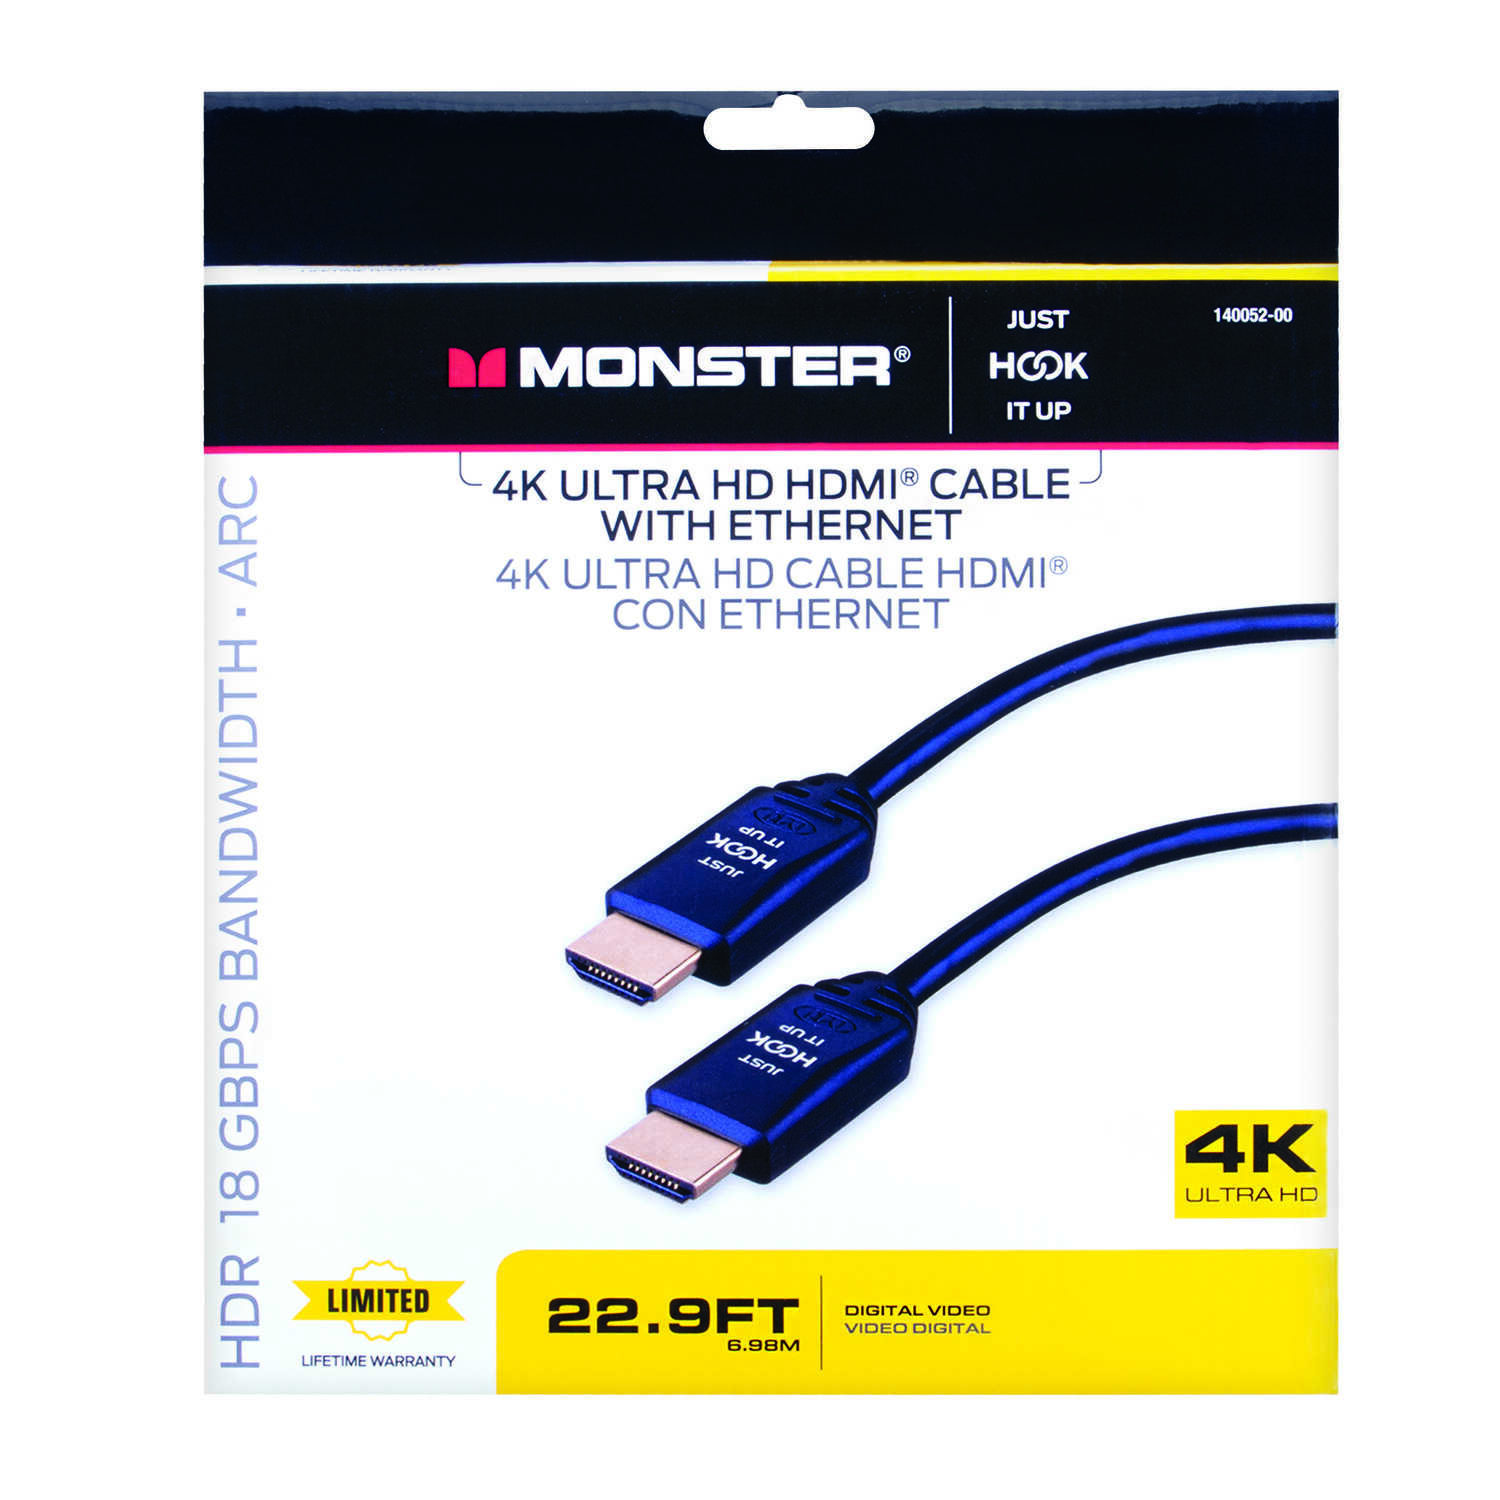 Monster Cable  Just Hook It Up  22.9 ft. L High Speed HDMI Cable with Ethernet  HDMI